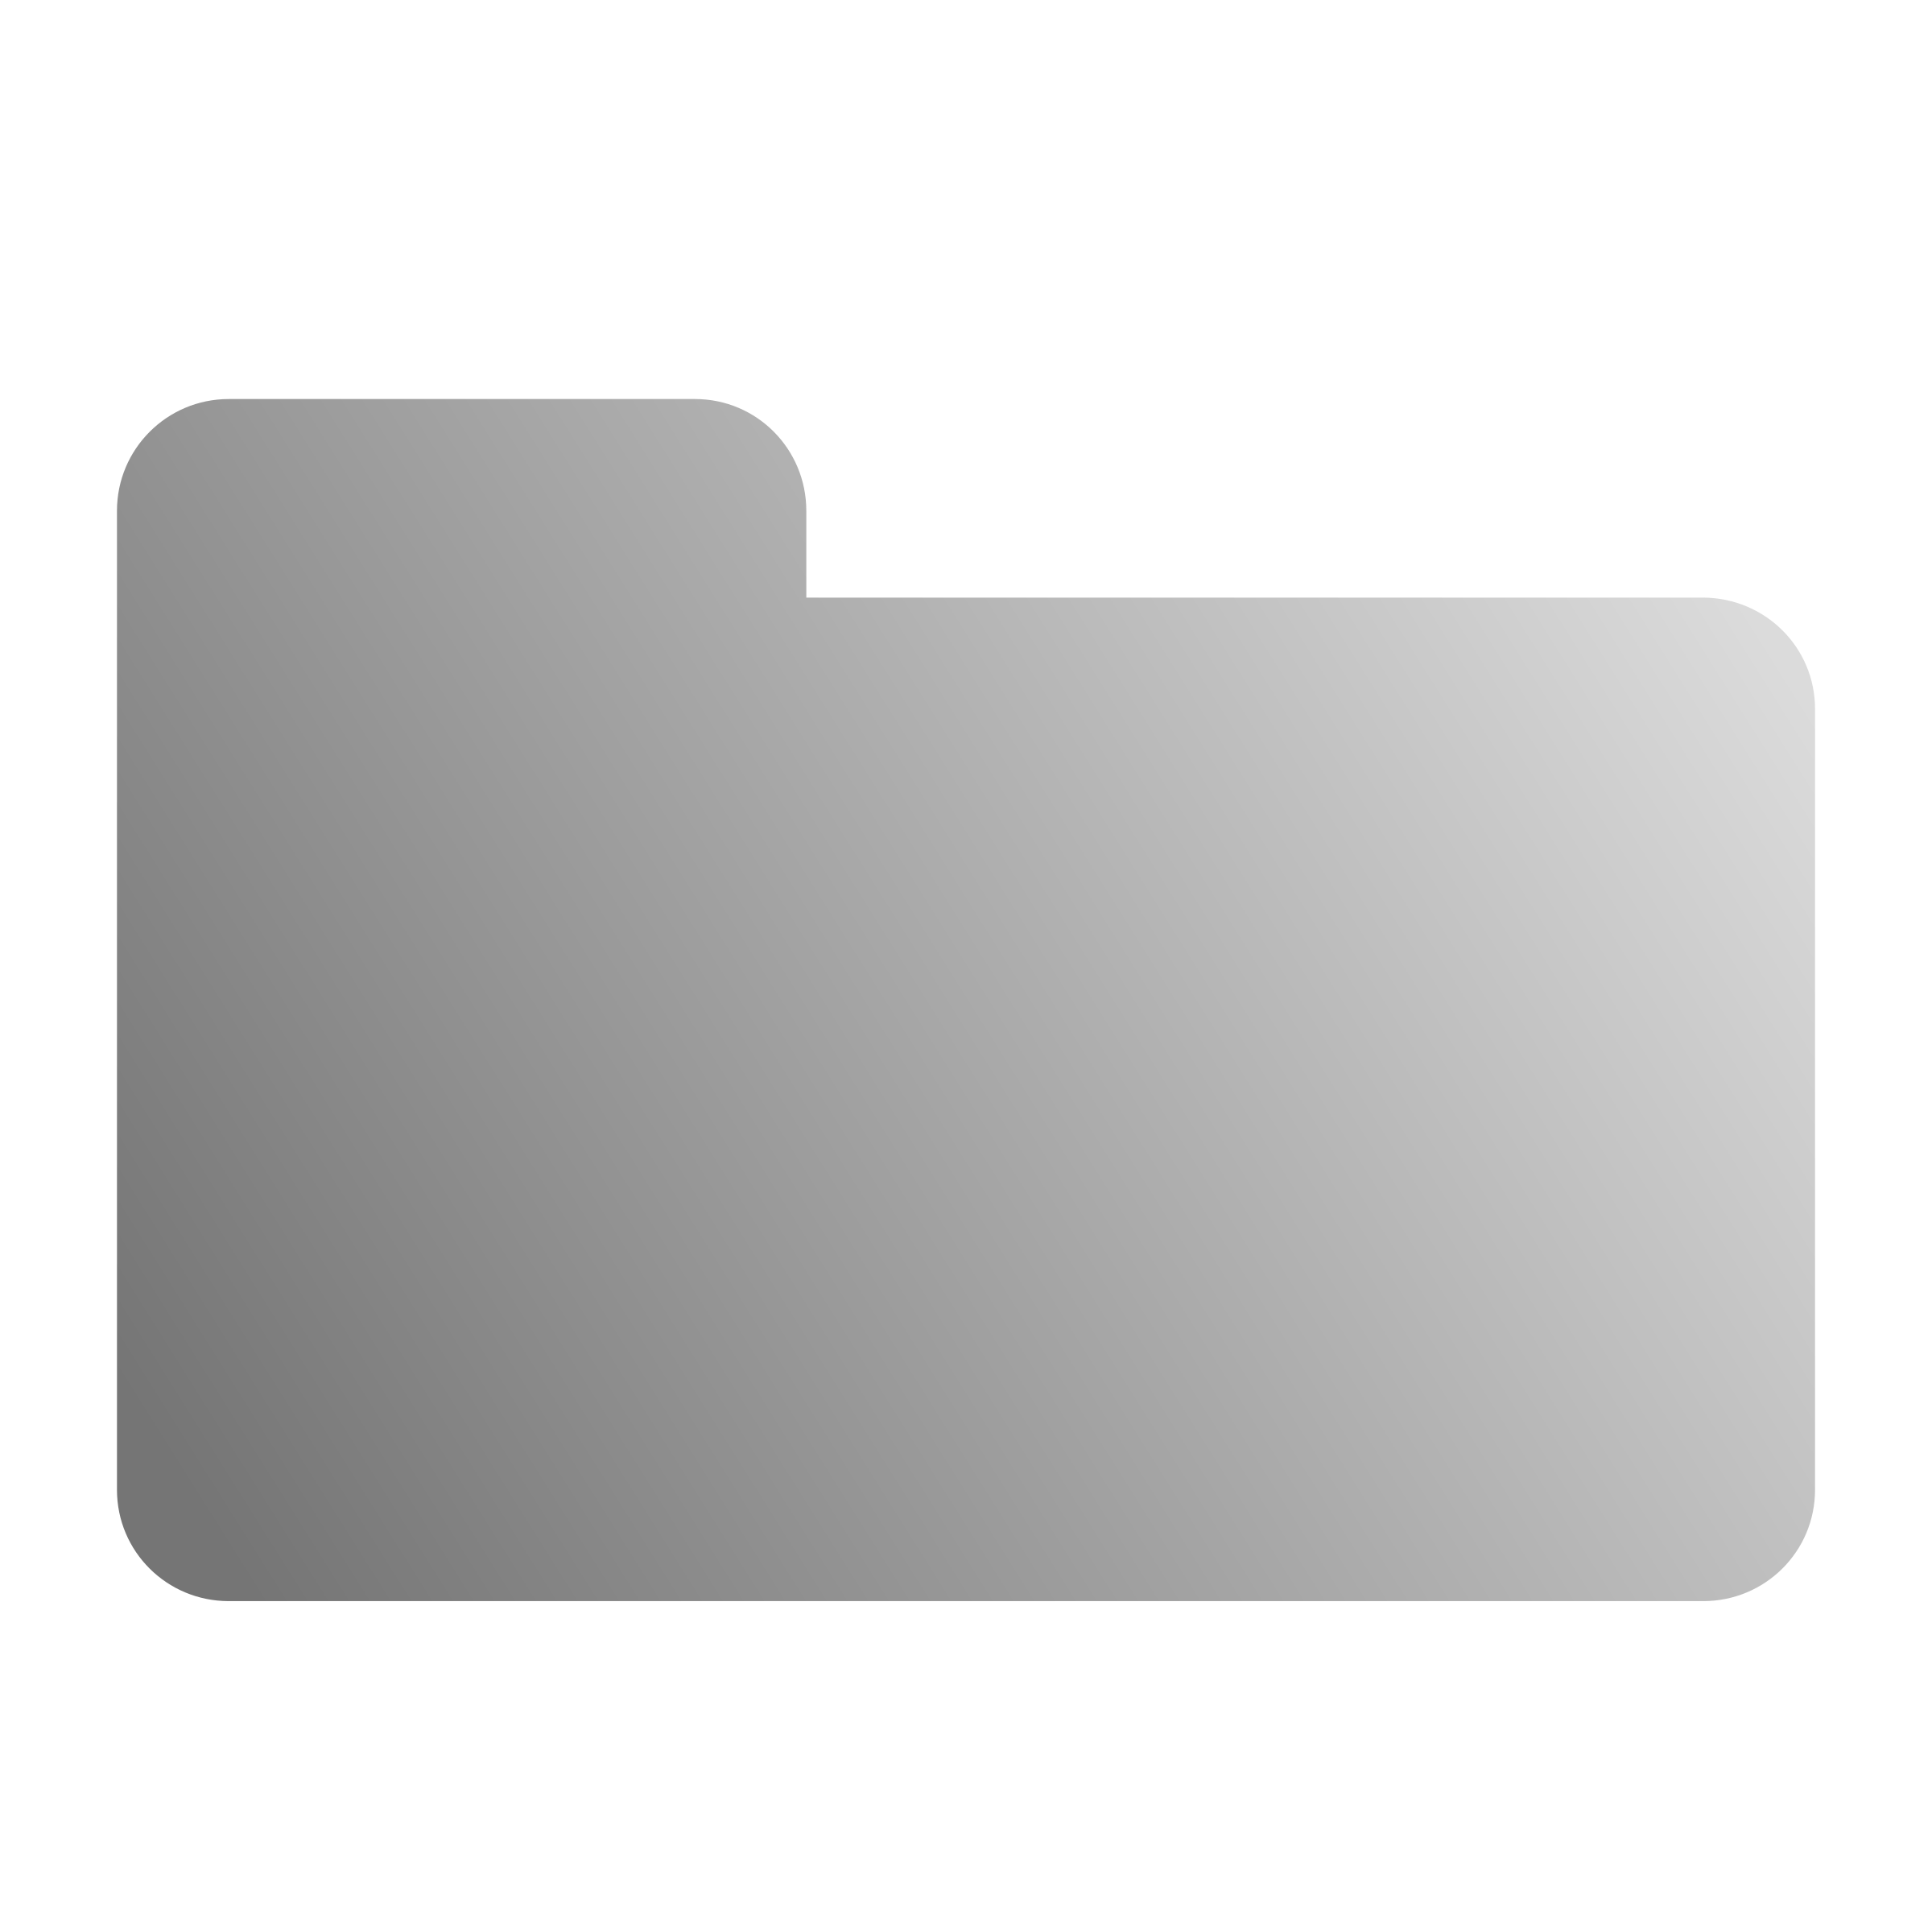 Icon big image png. White clipart folder